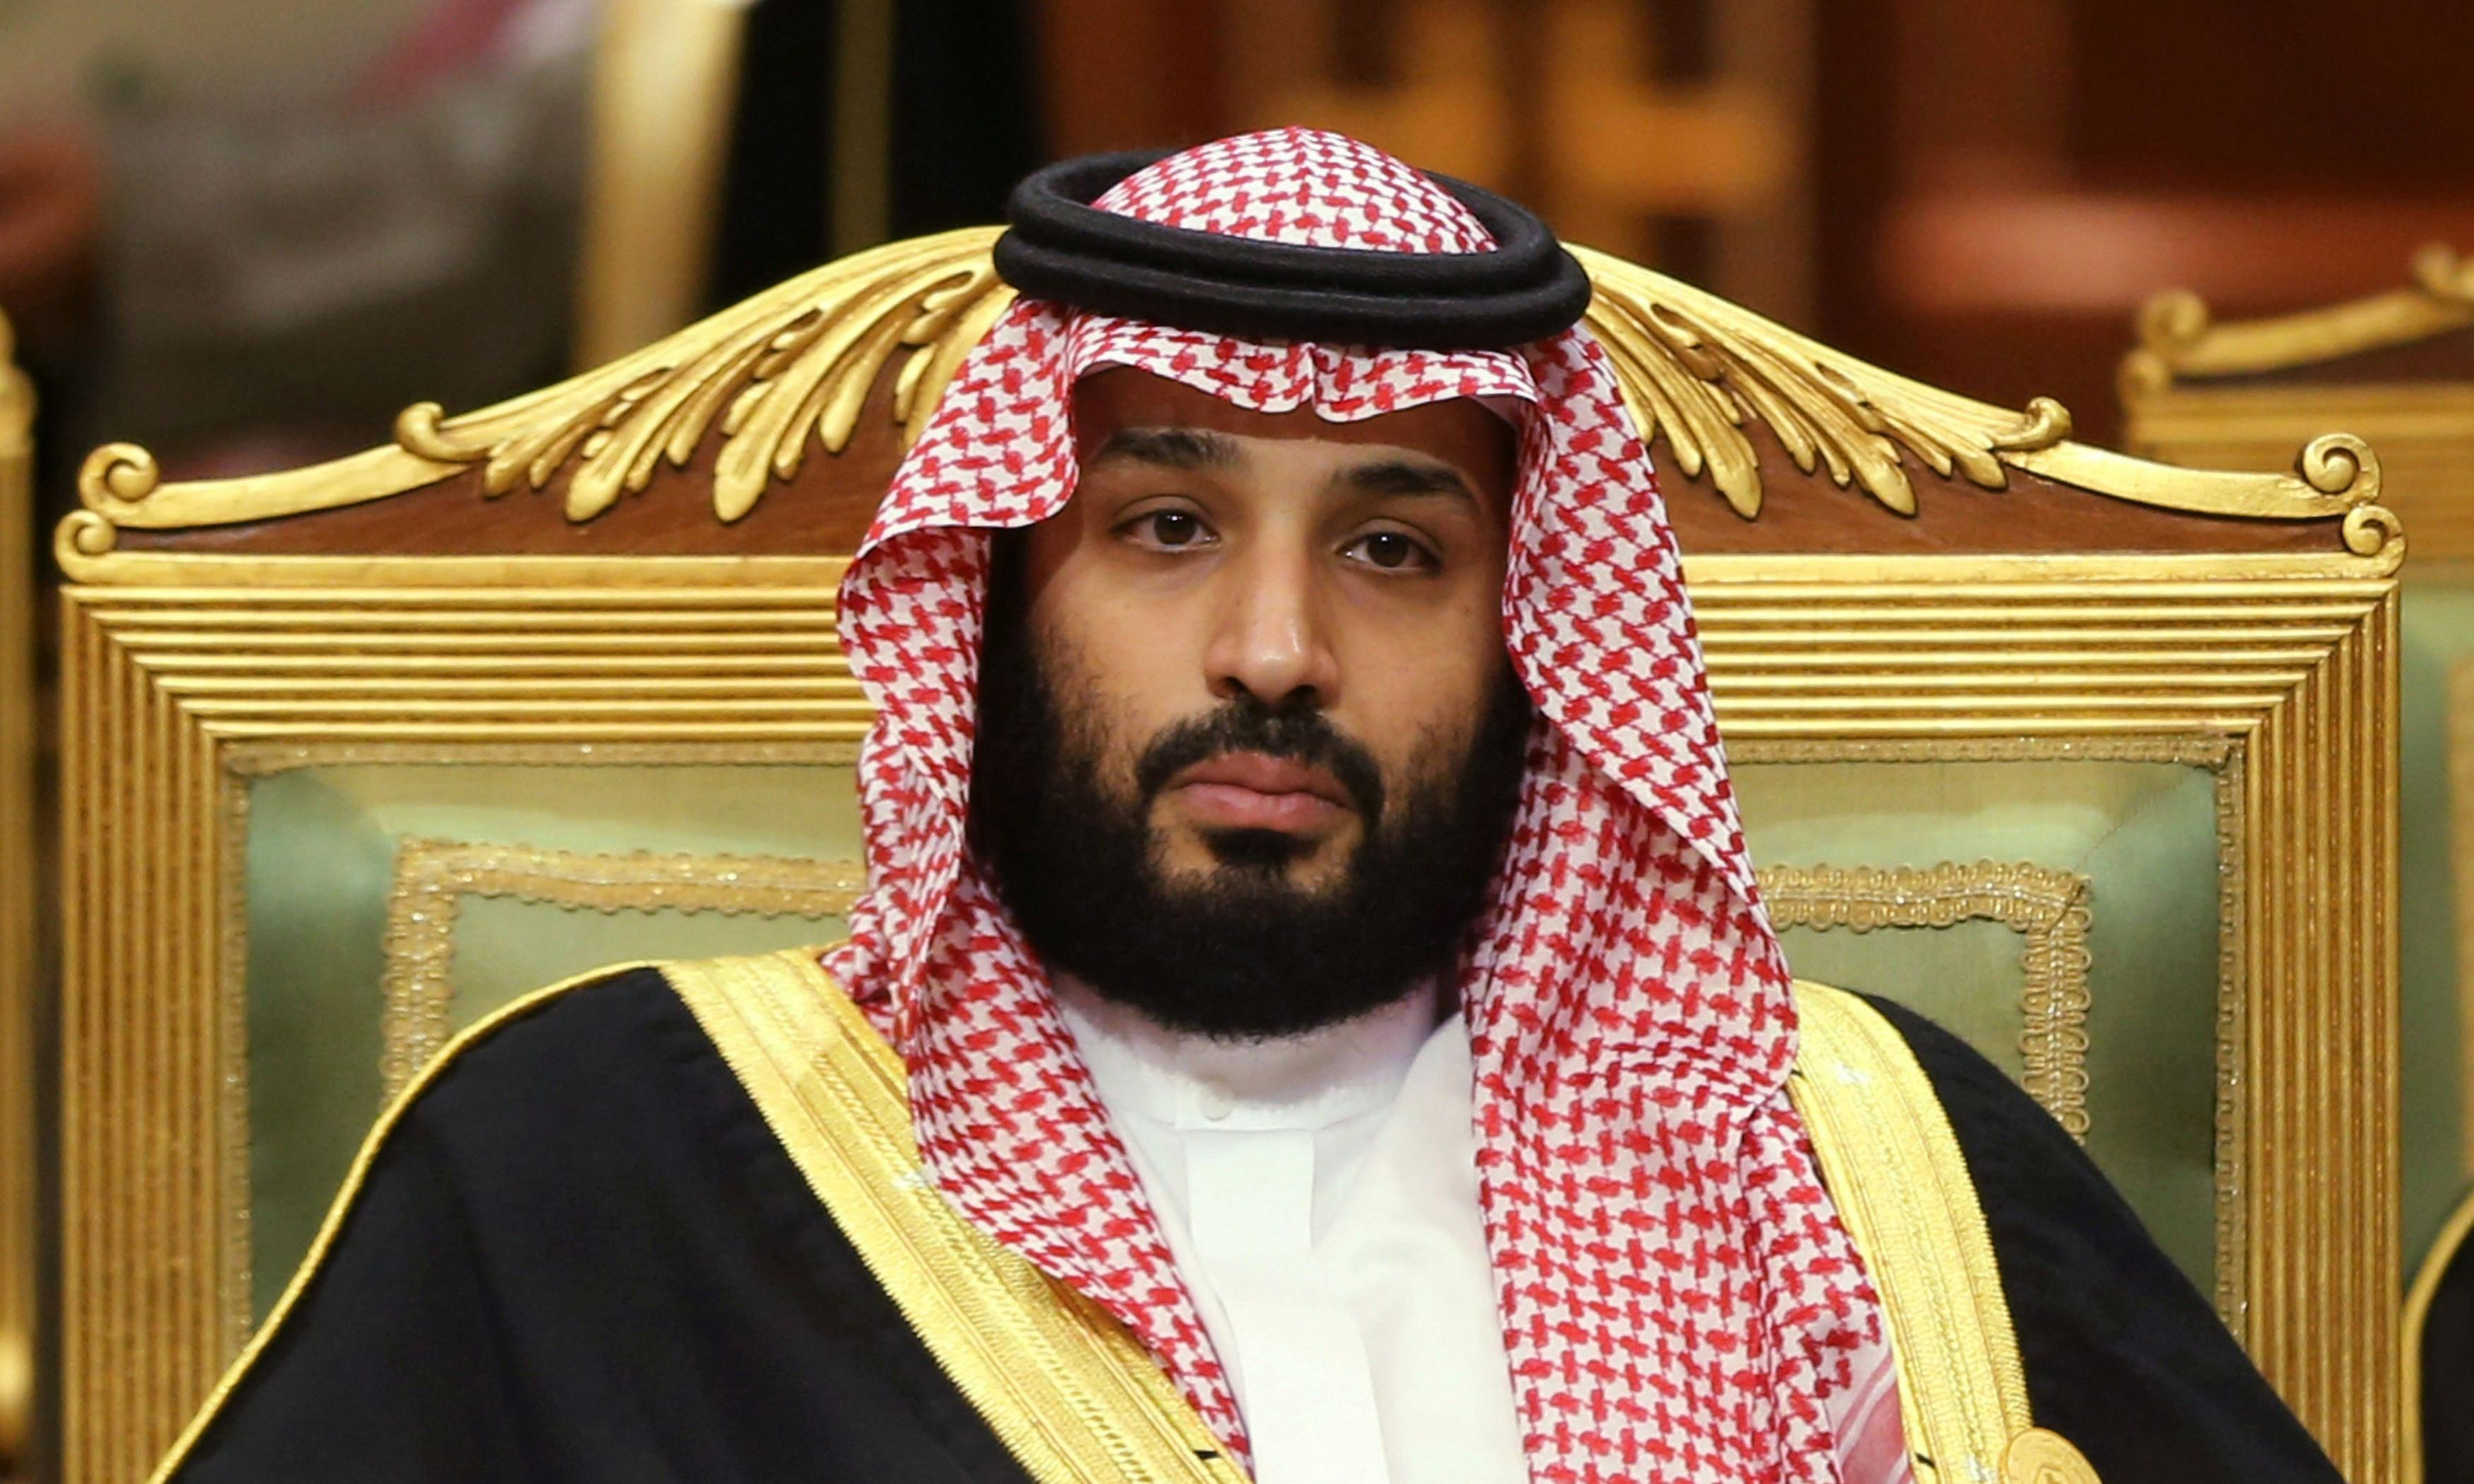 Revealed: the Saudi heir and the alleged plot to undermine Jeff Bezos